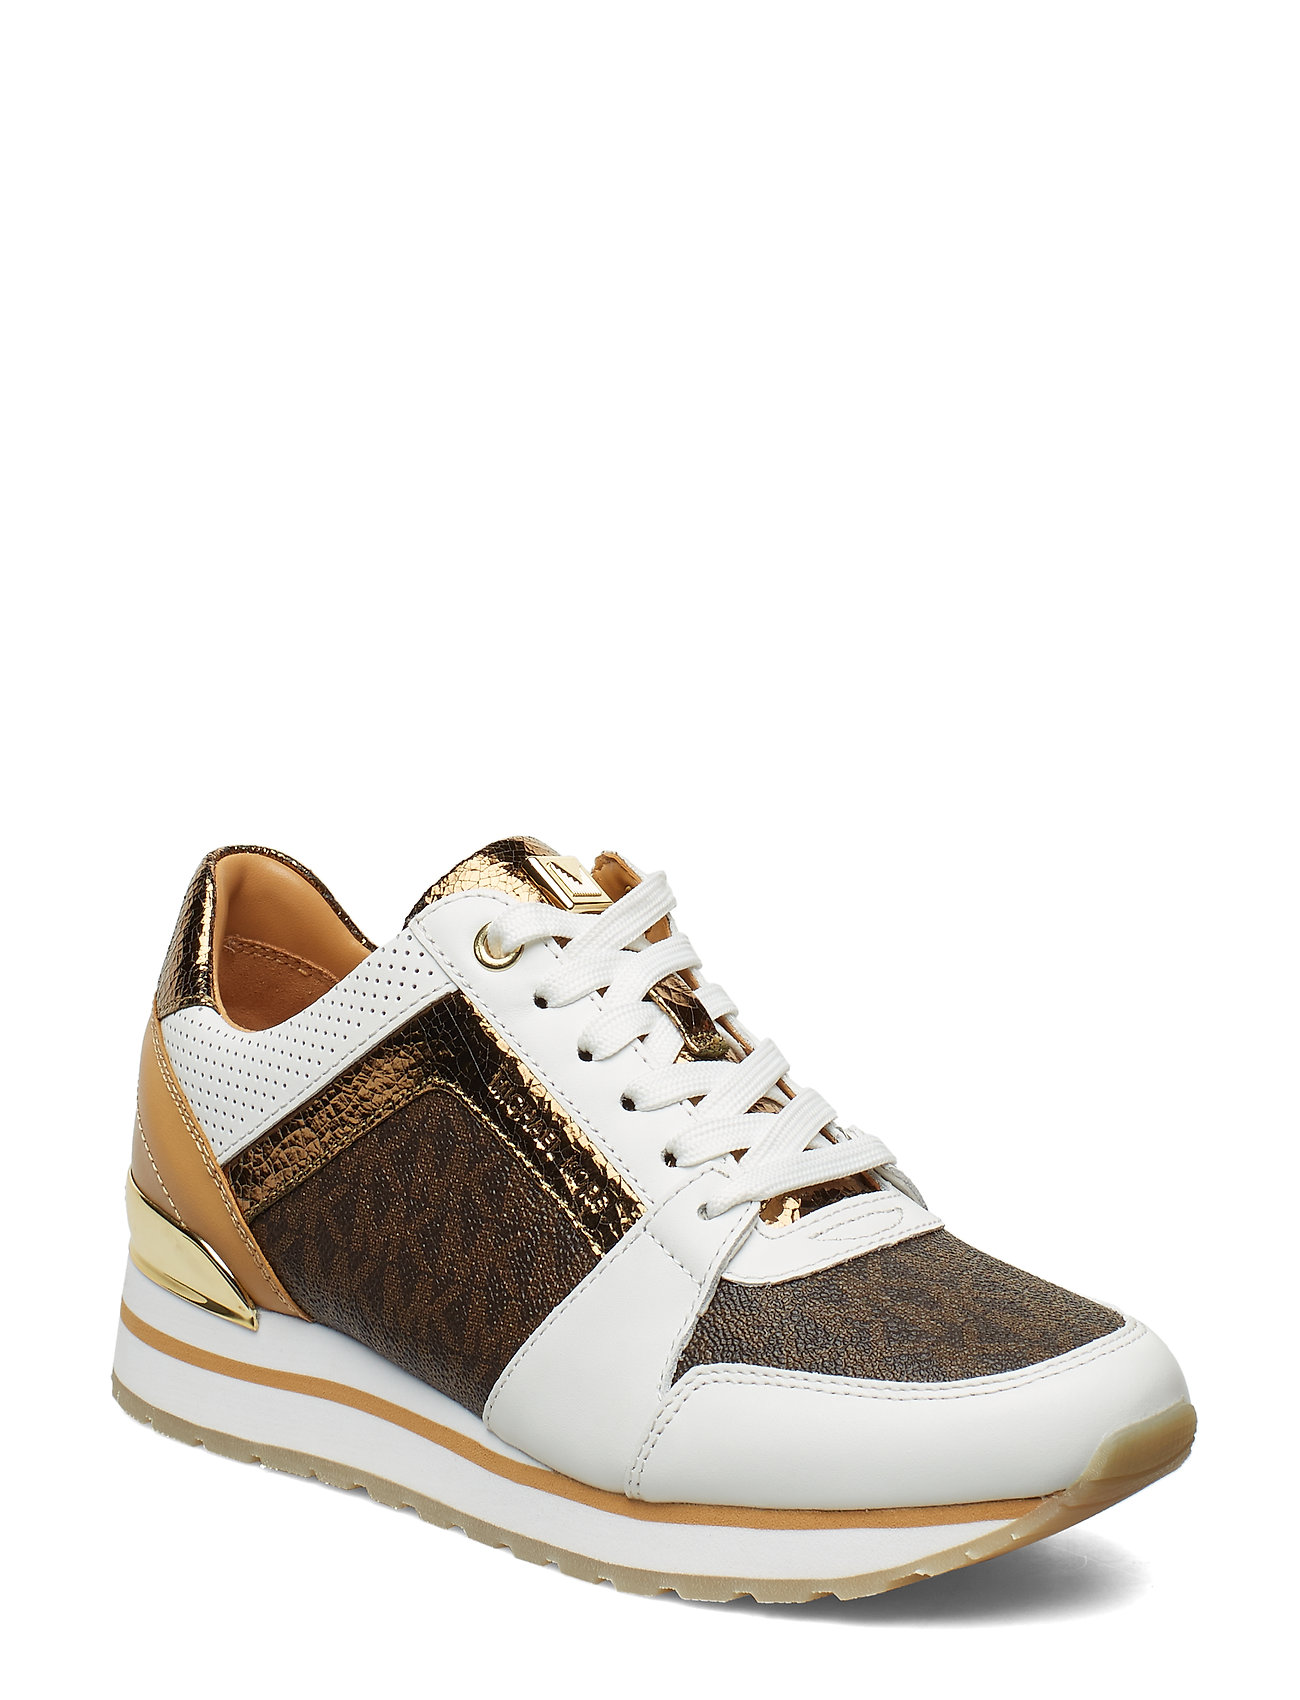 Michael Kors Shoes BILLIE TRAINER - OP WHT/BROWN